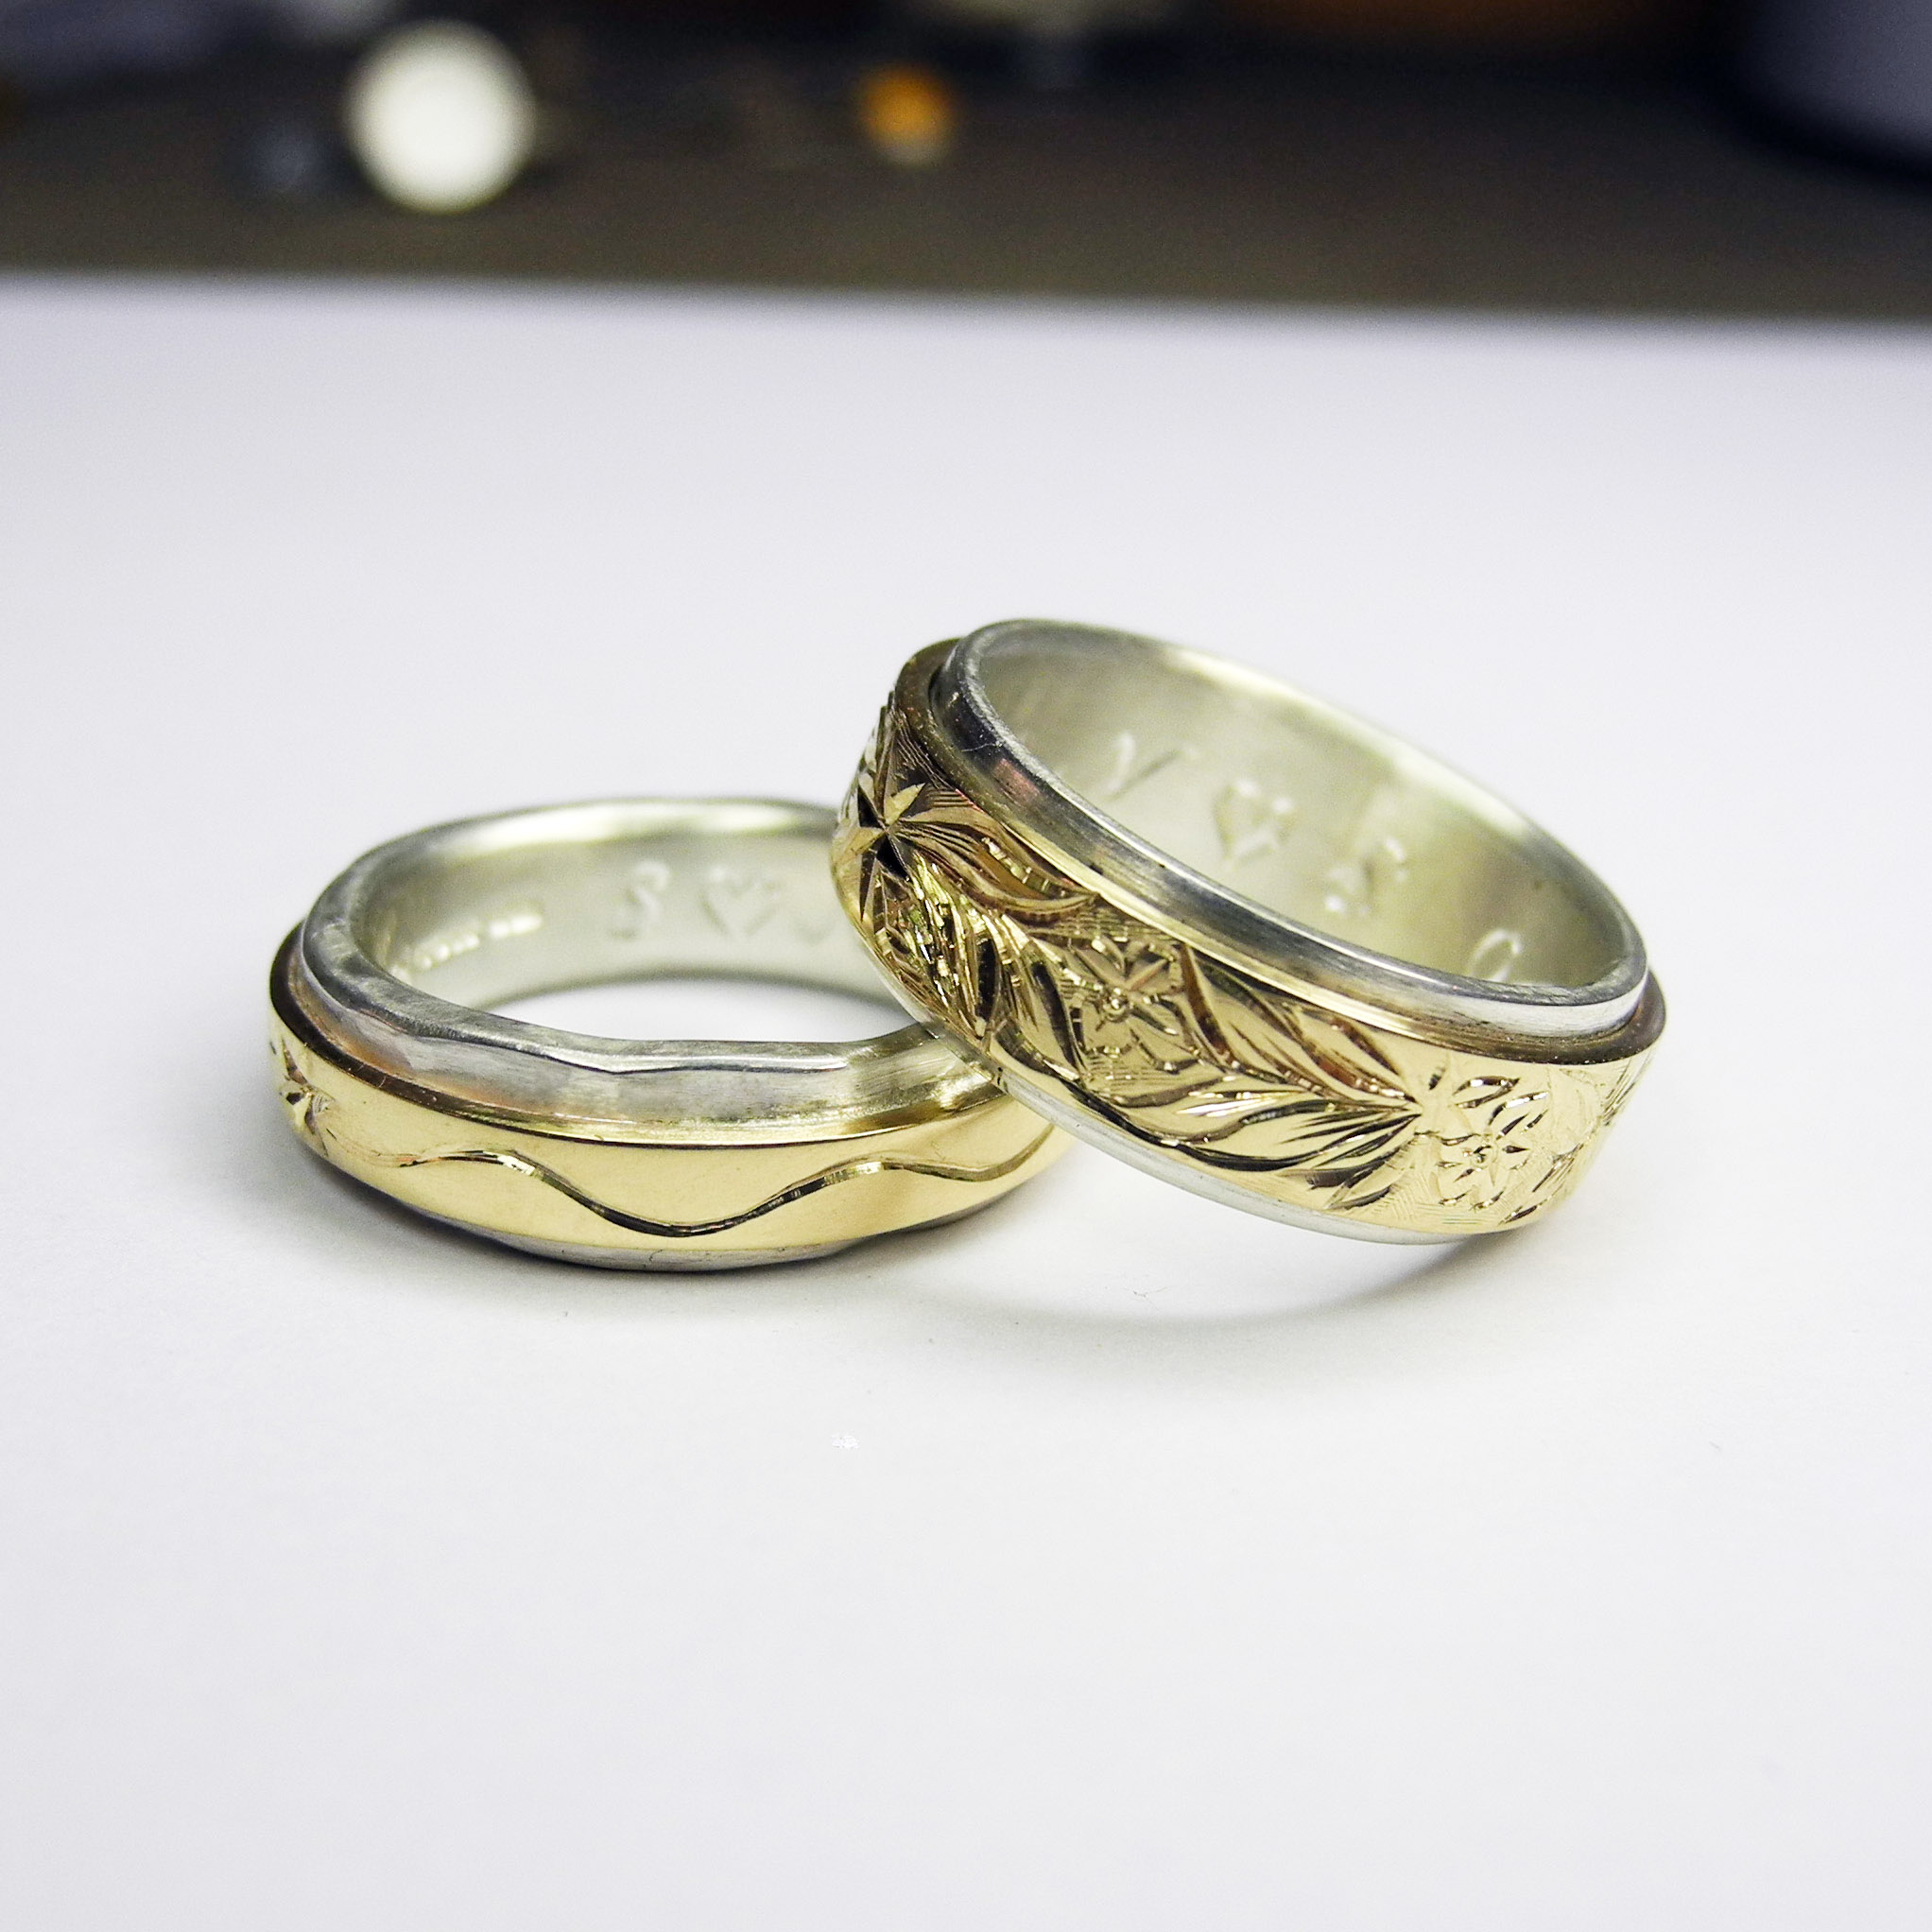 Gold wrapped around silver and engraved.